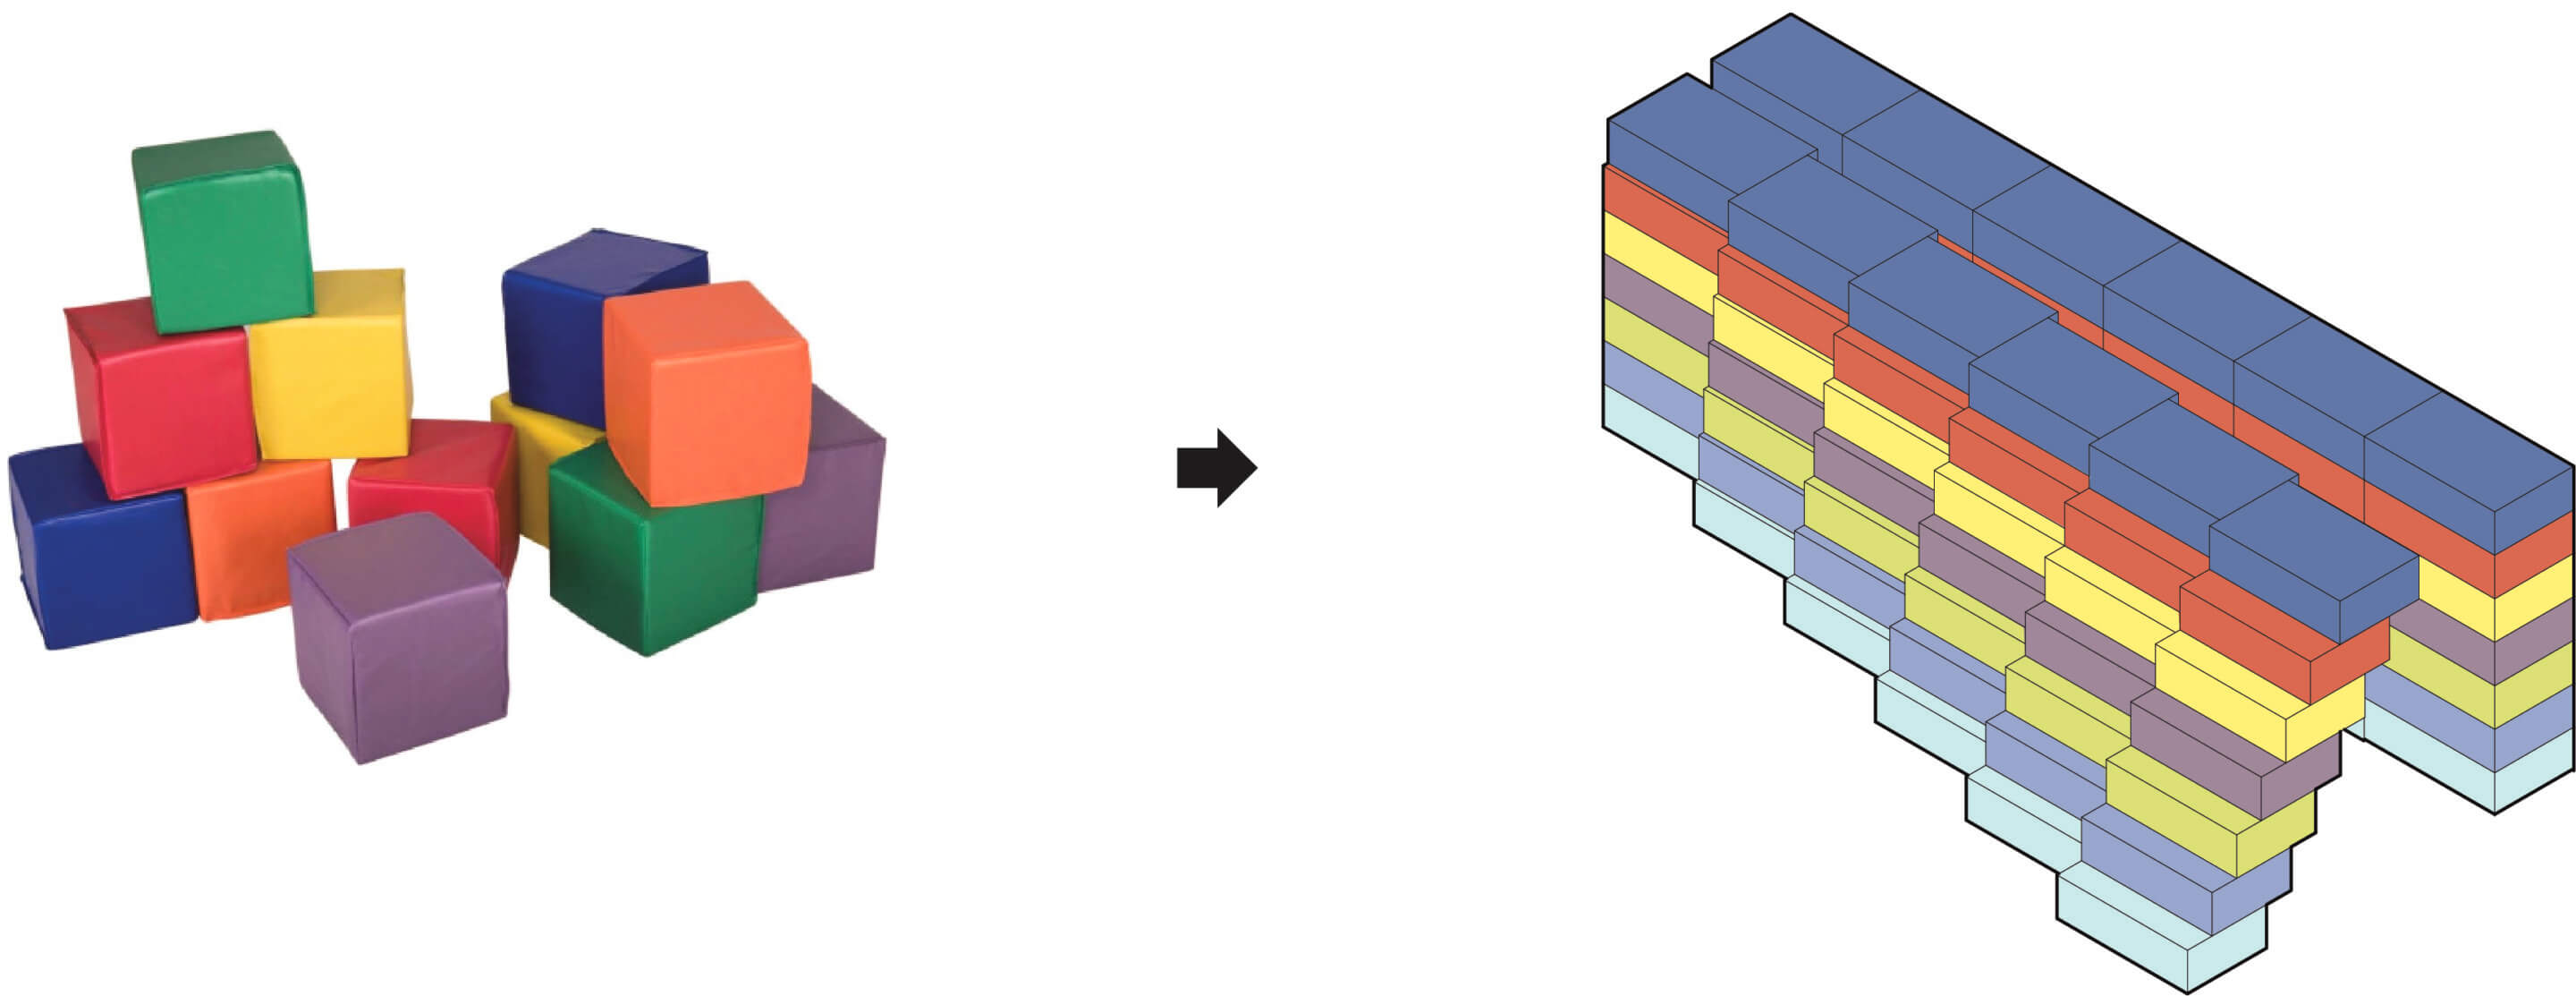 diagram of children's colored building blocks and a colored floor breakdown of the massing of the aya complex